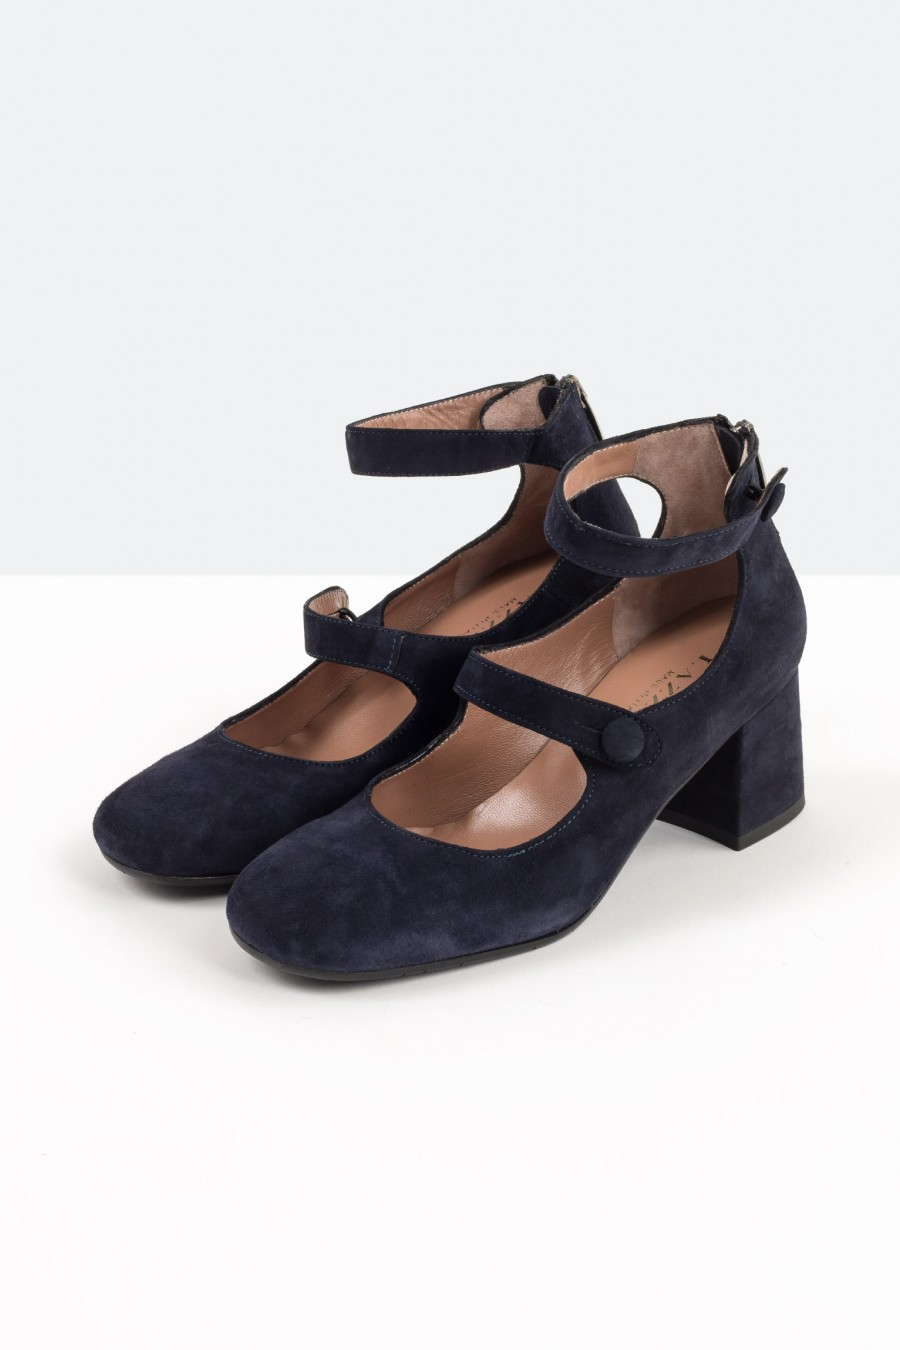 Navy blue suede Mary Jane shoes